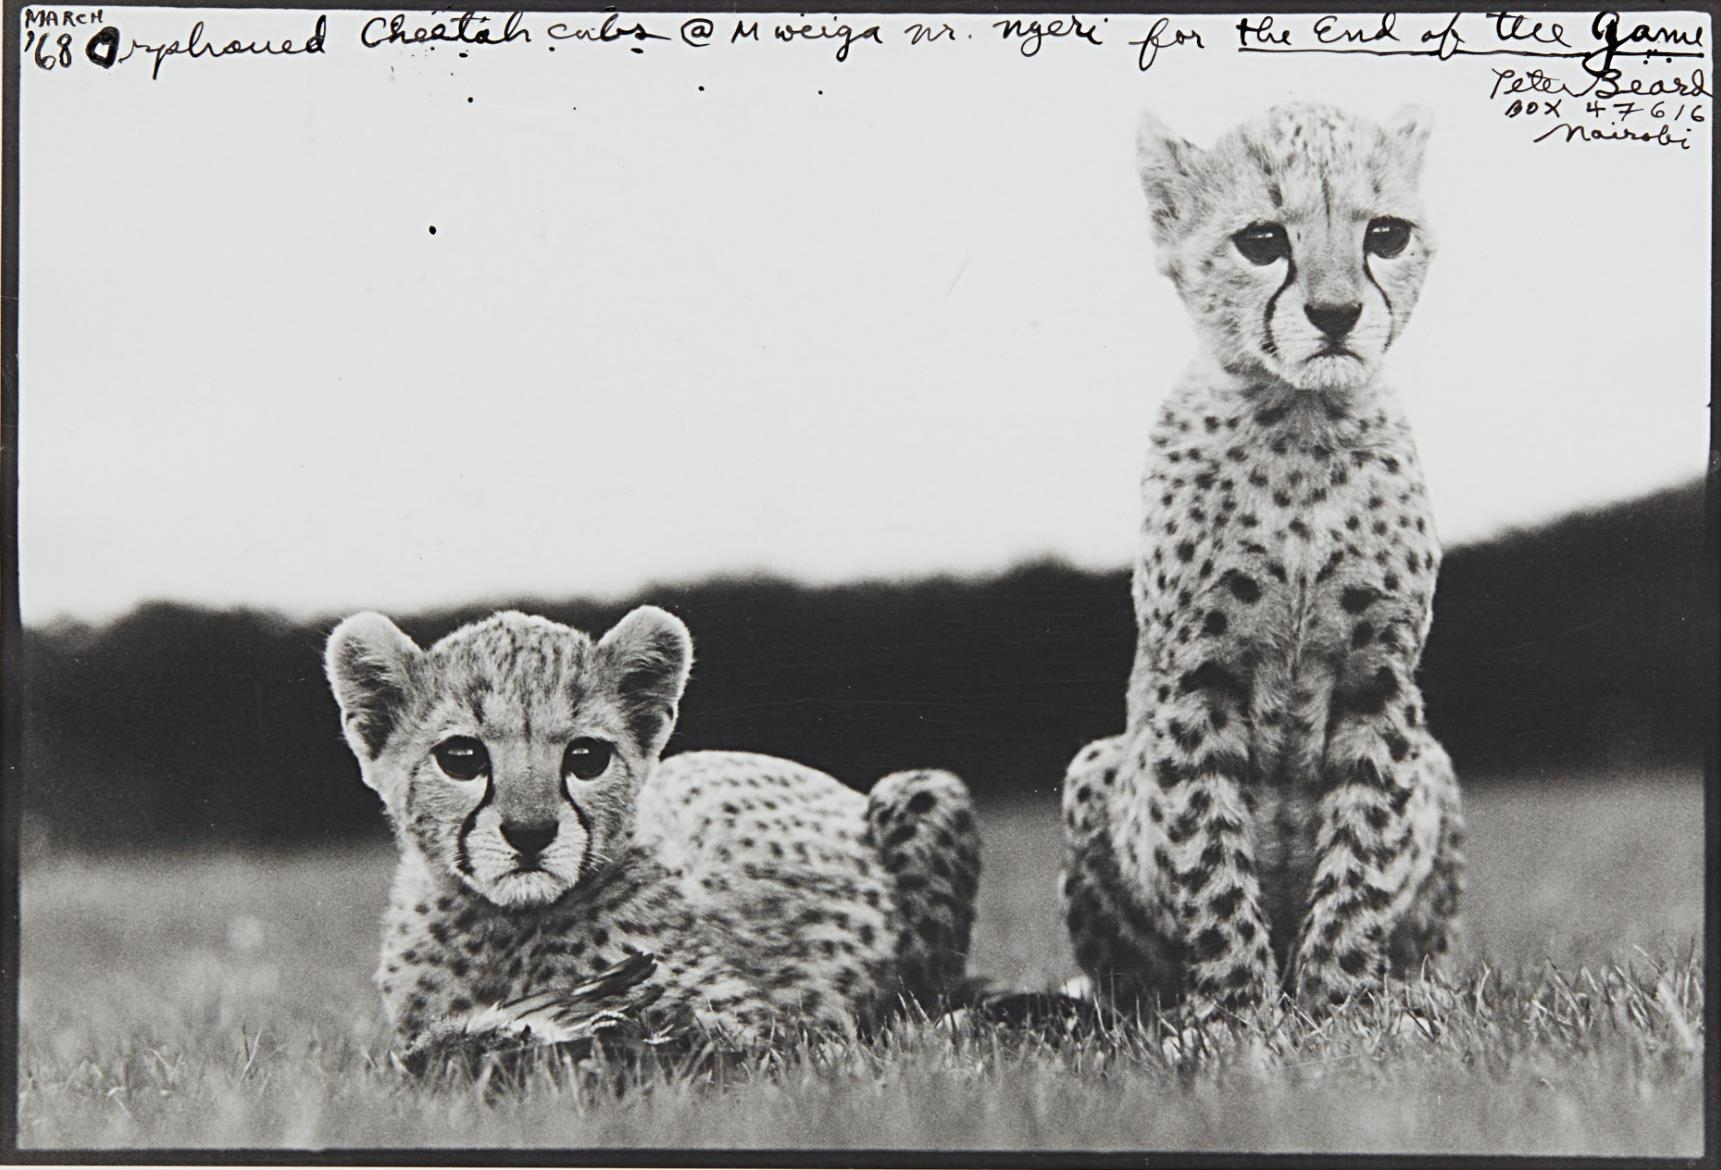 Peter Beard-Orphaned Cheetah Cubs, Mweiga National Park, Kenya For The End Of The Game-1968